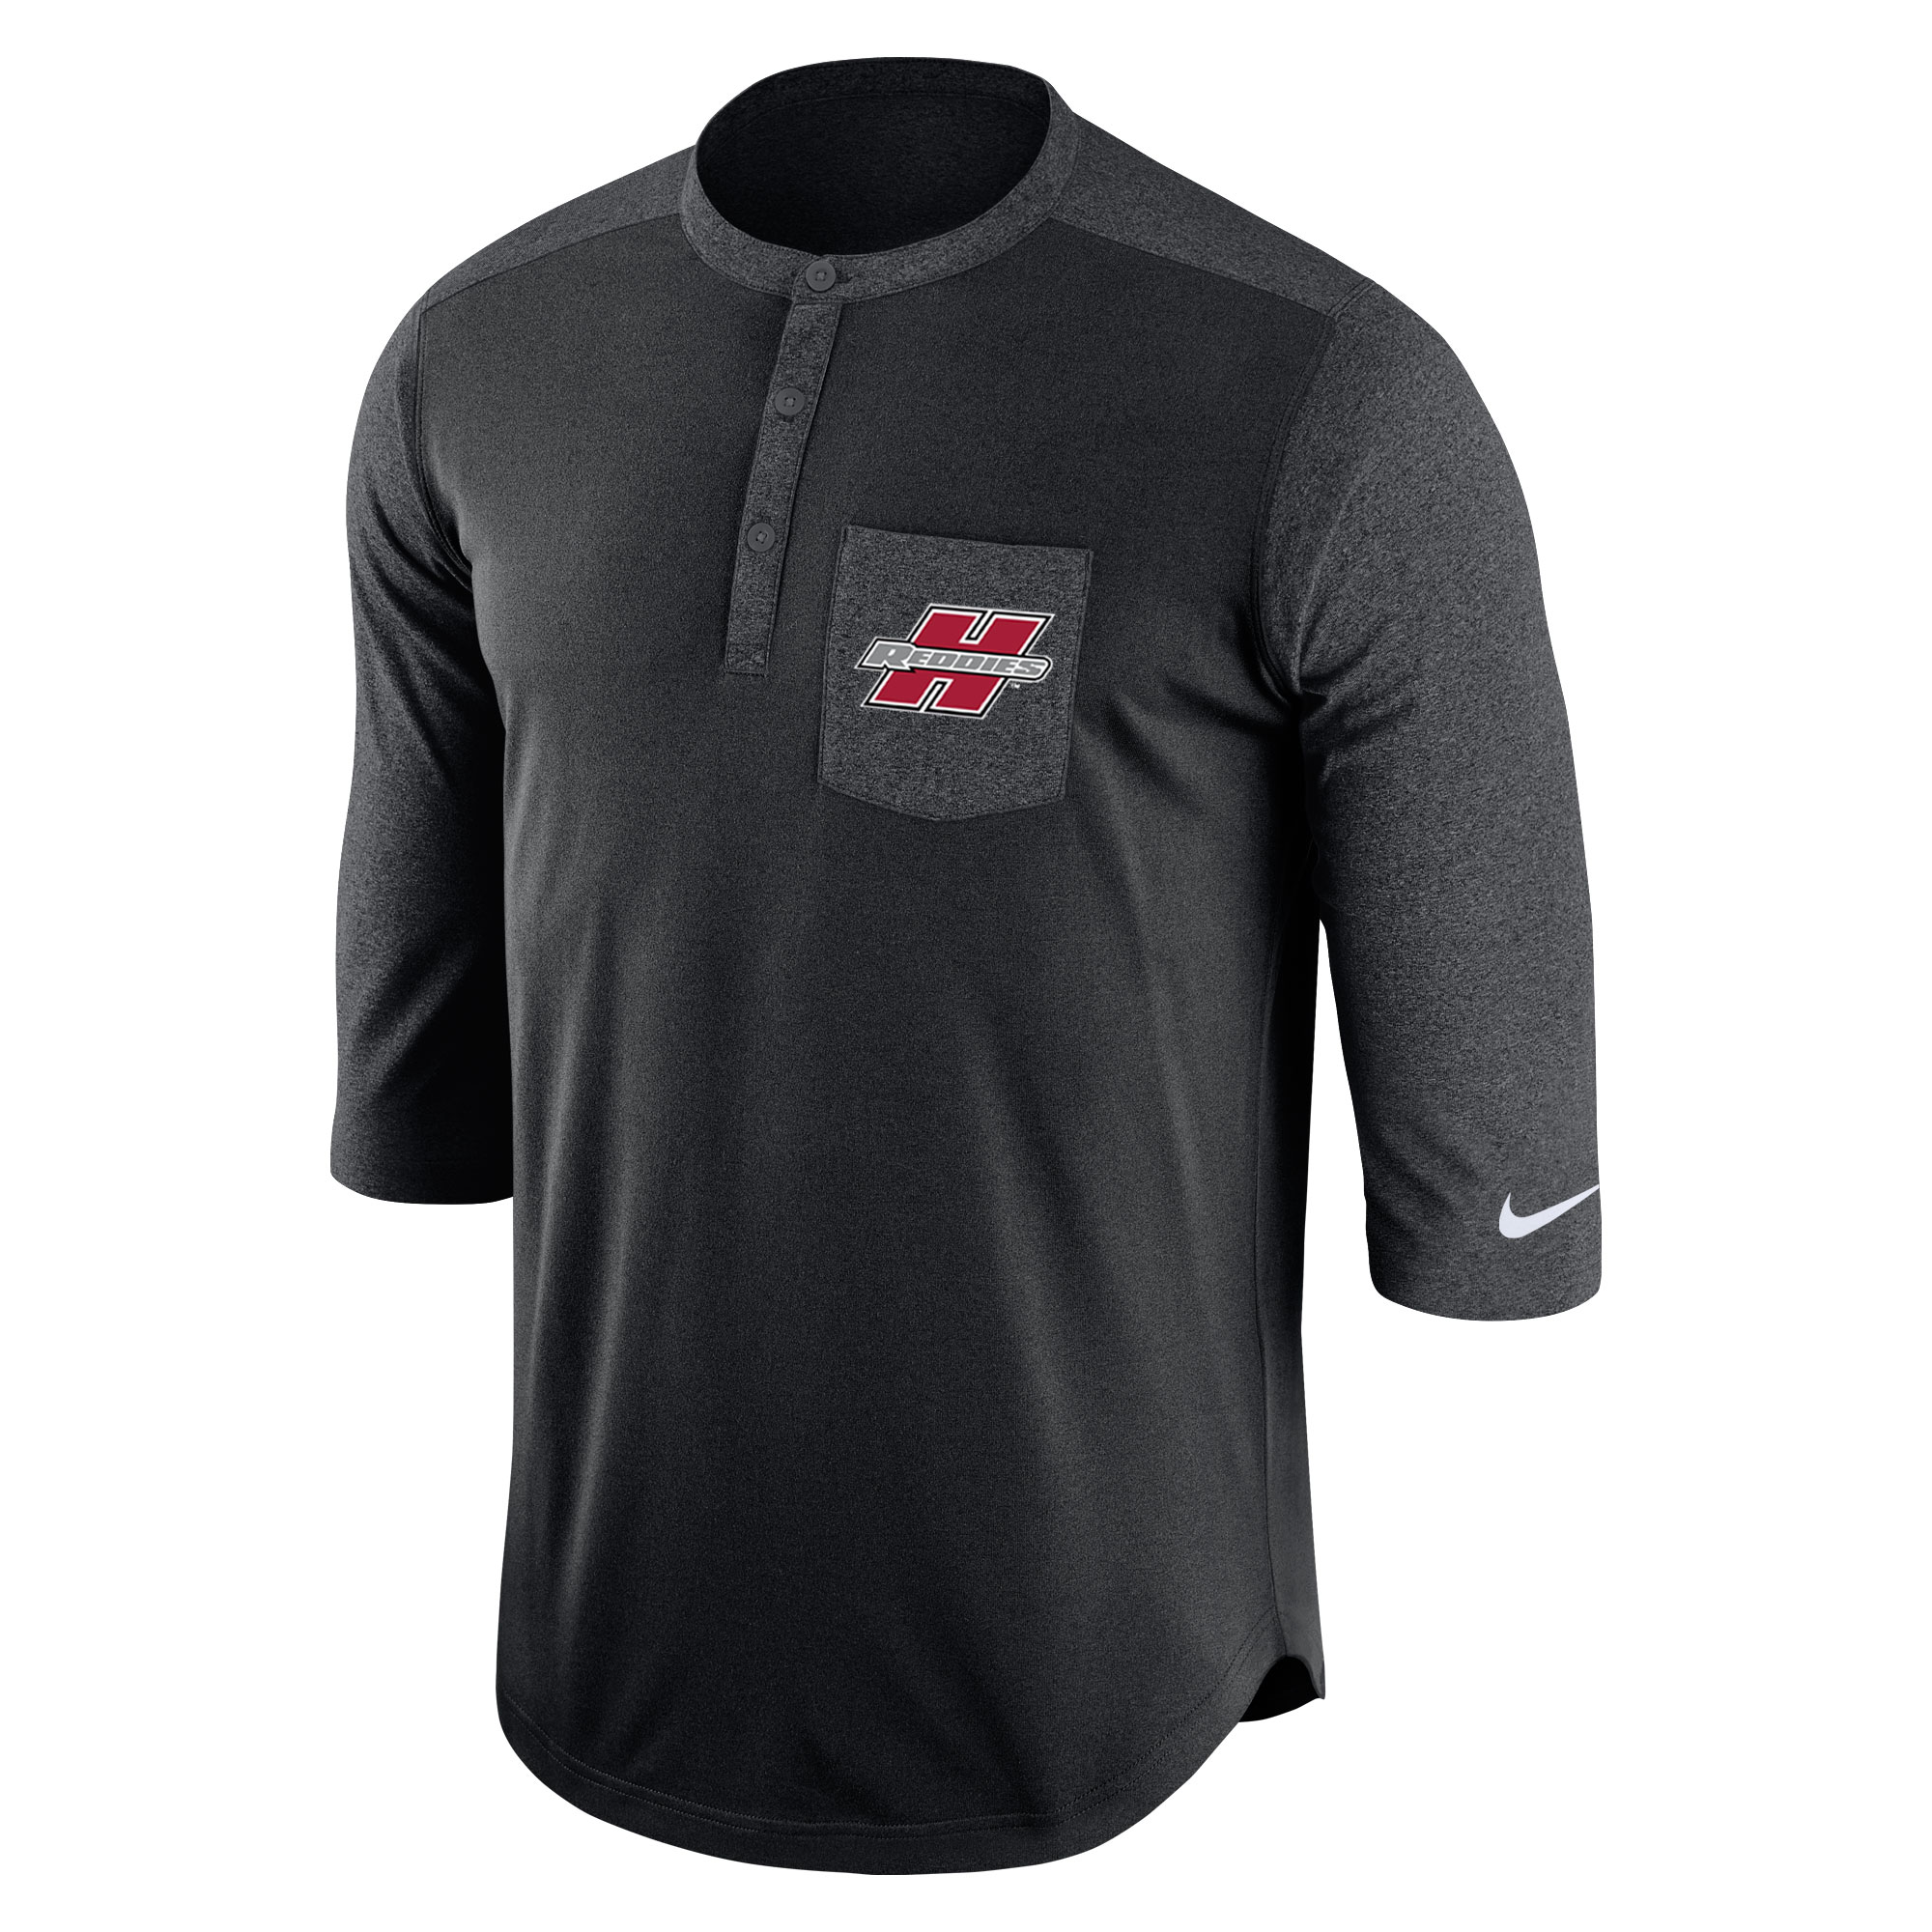 Nike Dri-Fit Henley Shirt